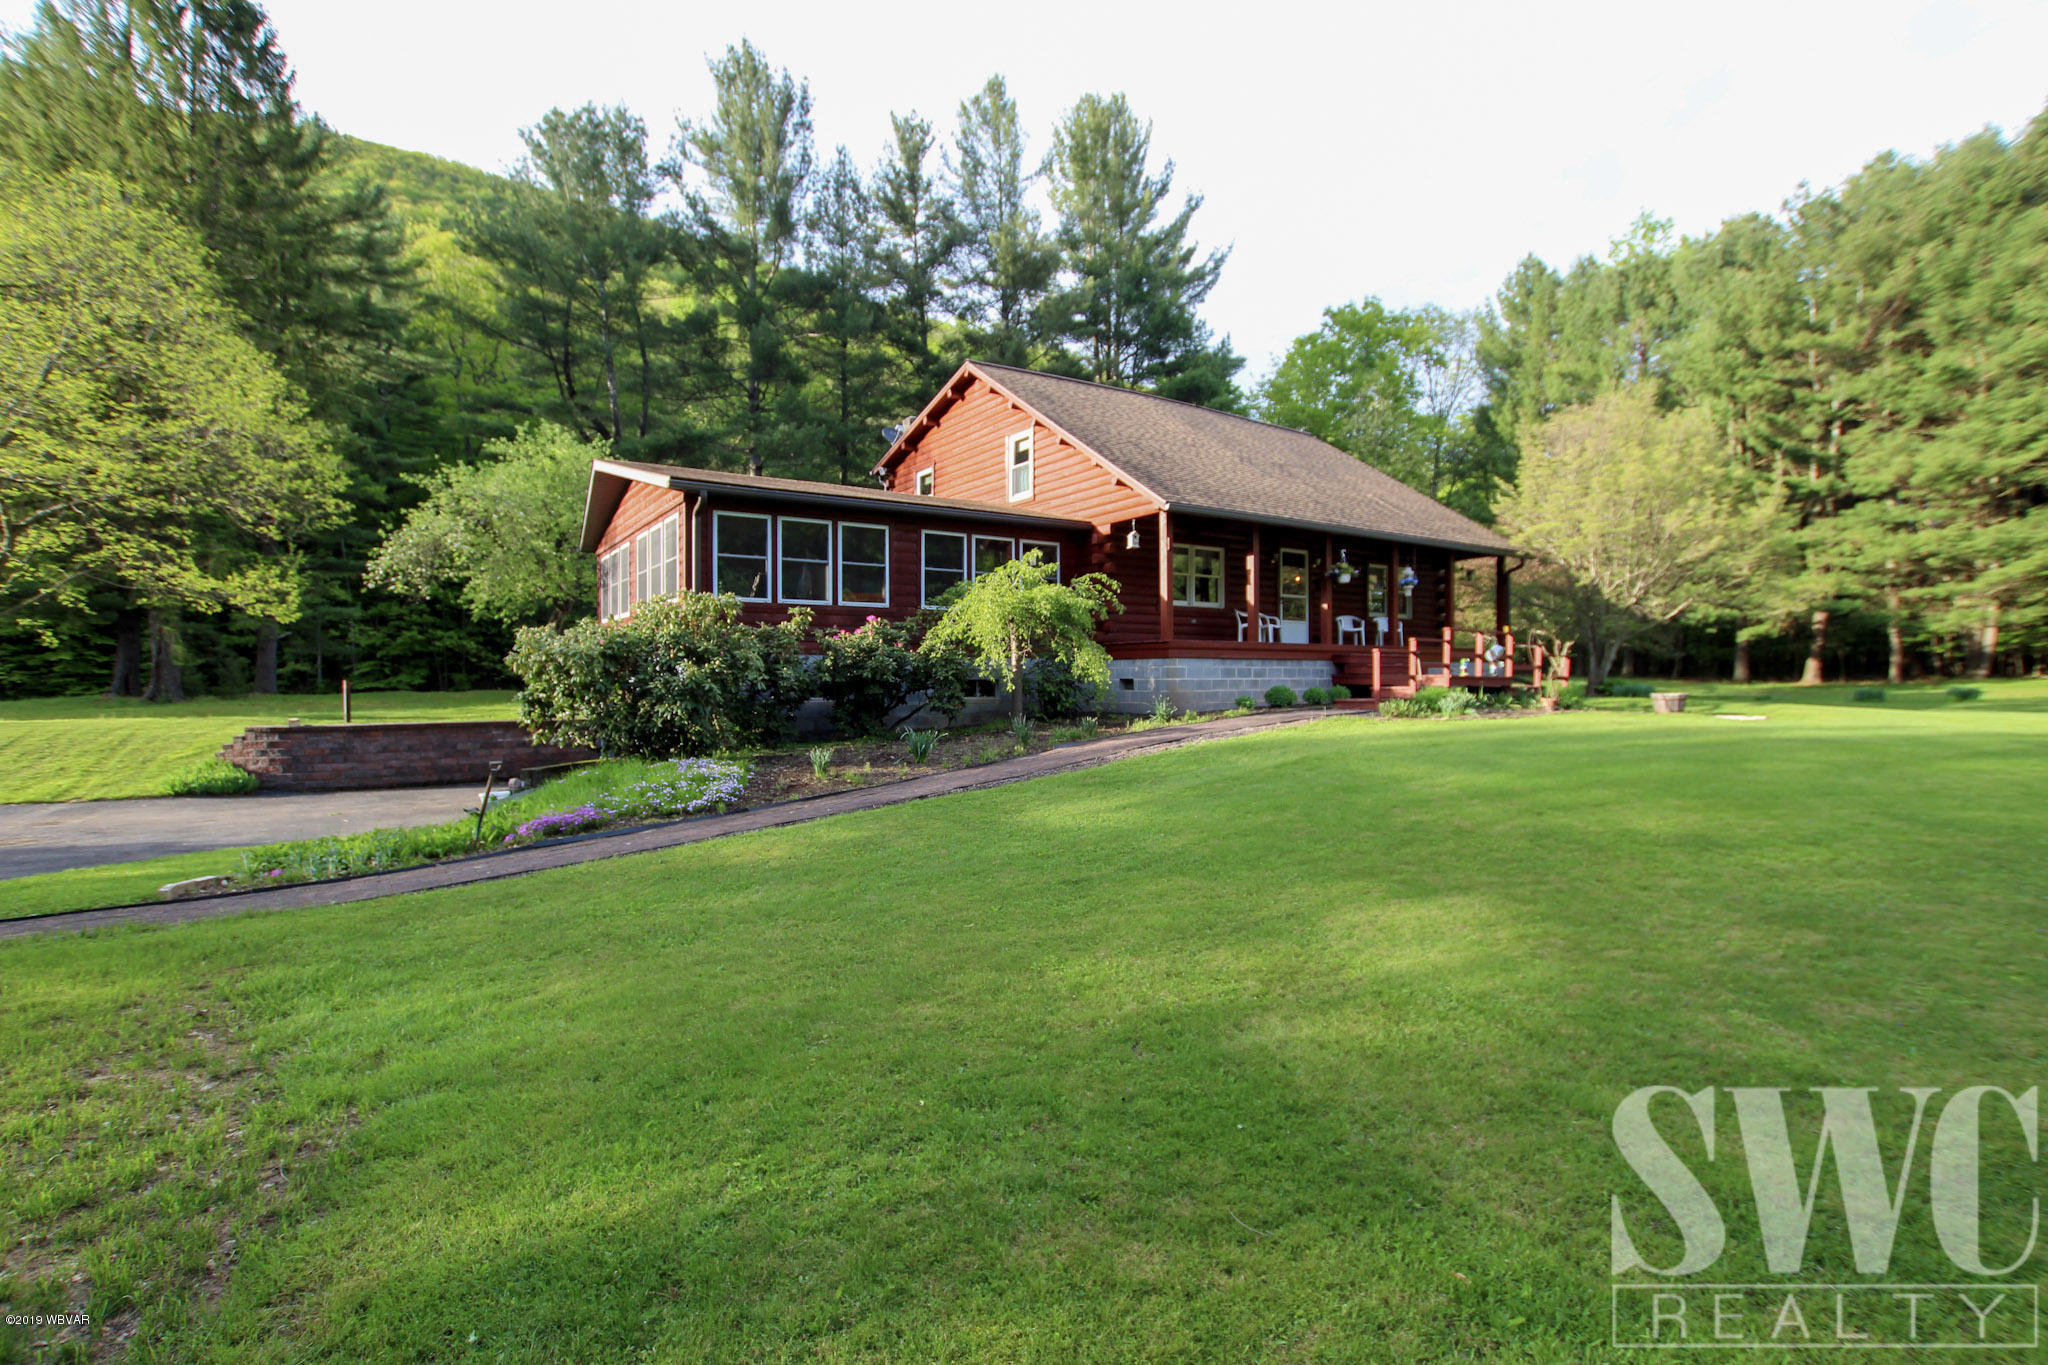 1591 PLEASANT STREAM ROAD,Trout Run,PA 17771,2 Bedrooms Bedrooms,3 BathroomsBathrooms,Residential,PLEASANT STREAM,WB-87383